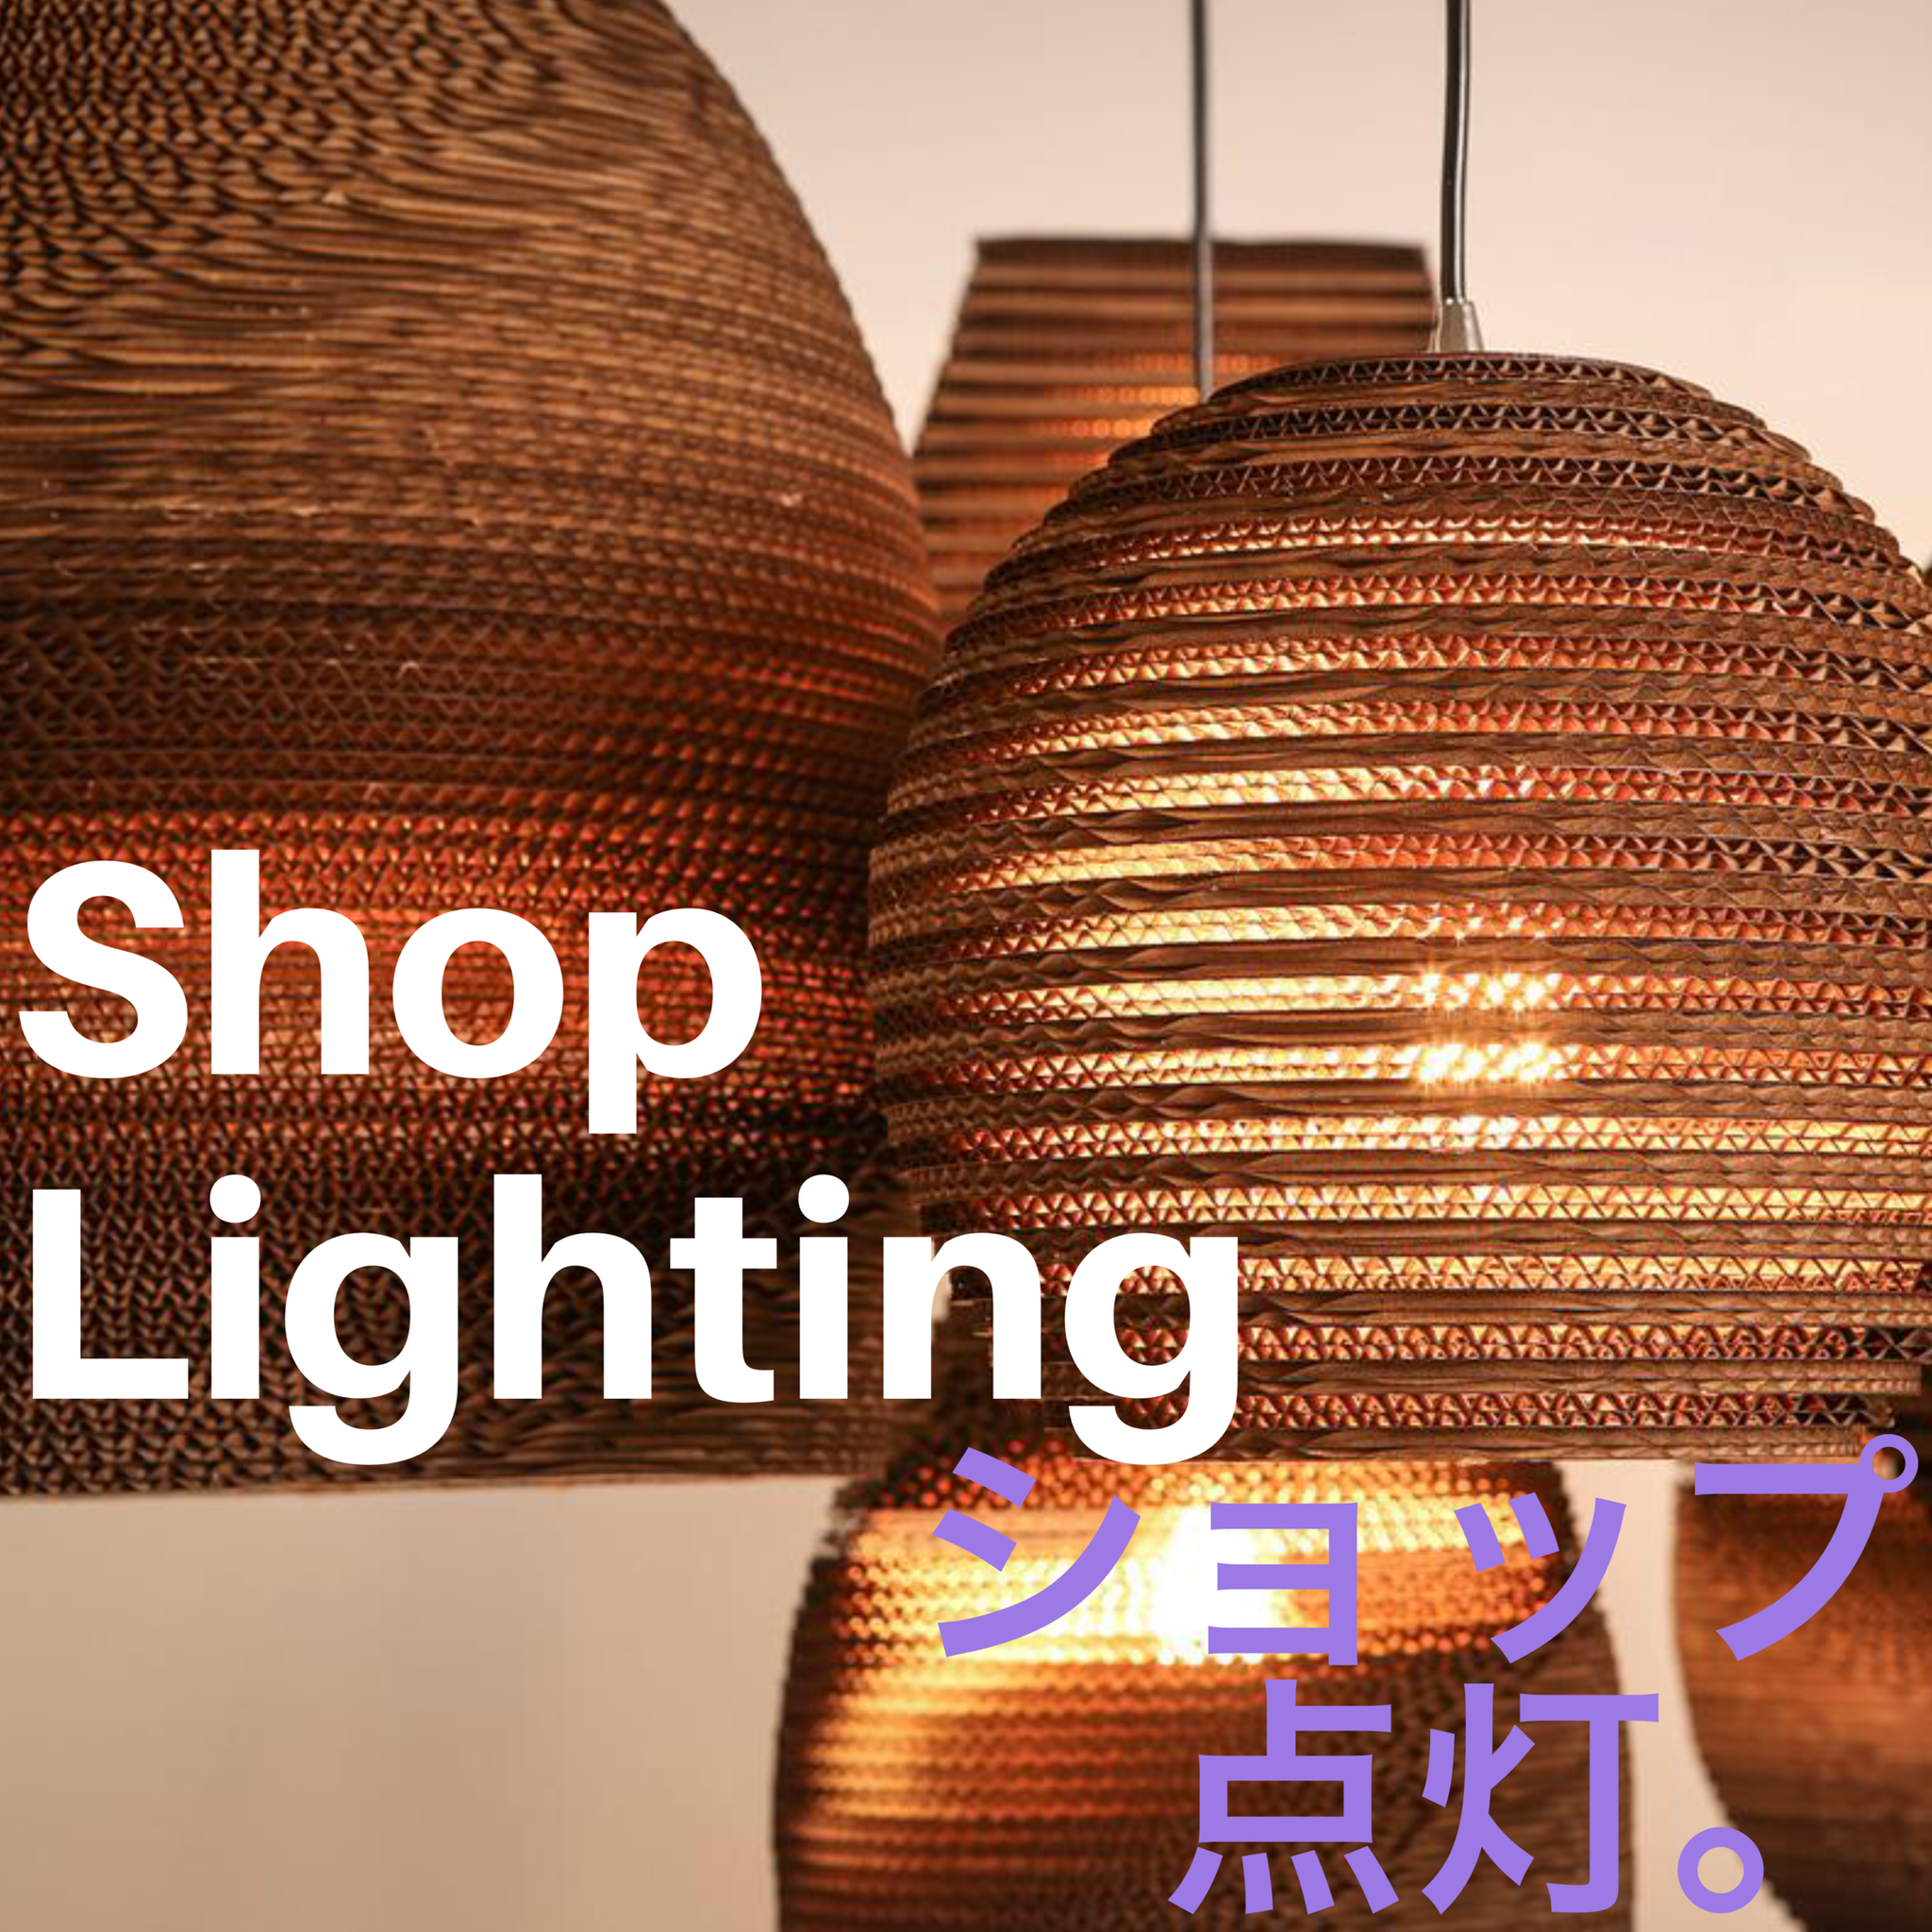 miTeigi | Lighting | Japanese Apparel and Home Decor Retail Shopping